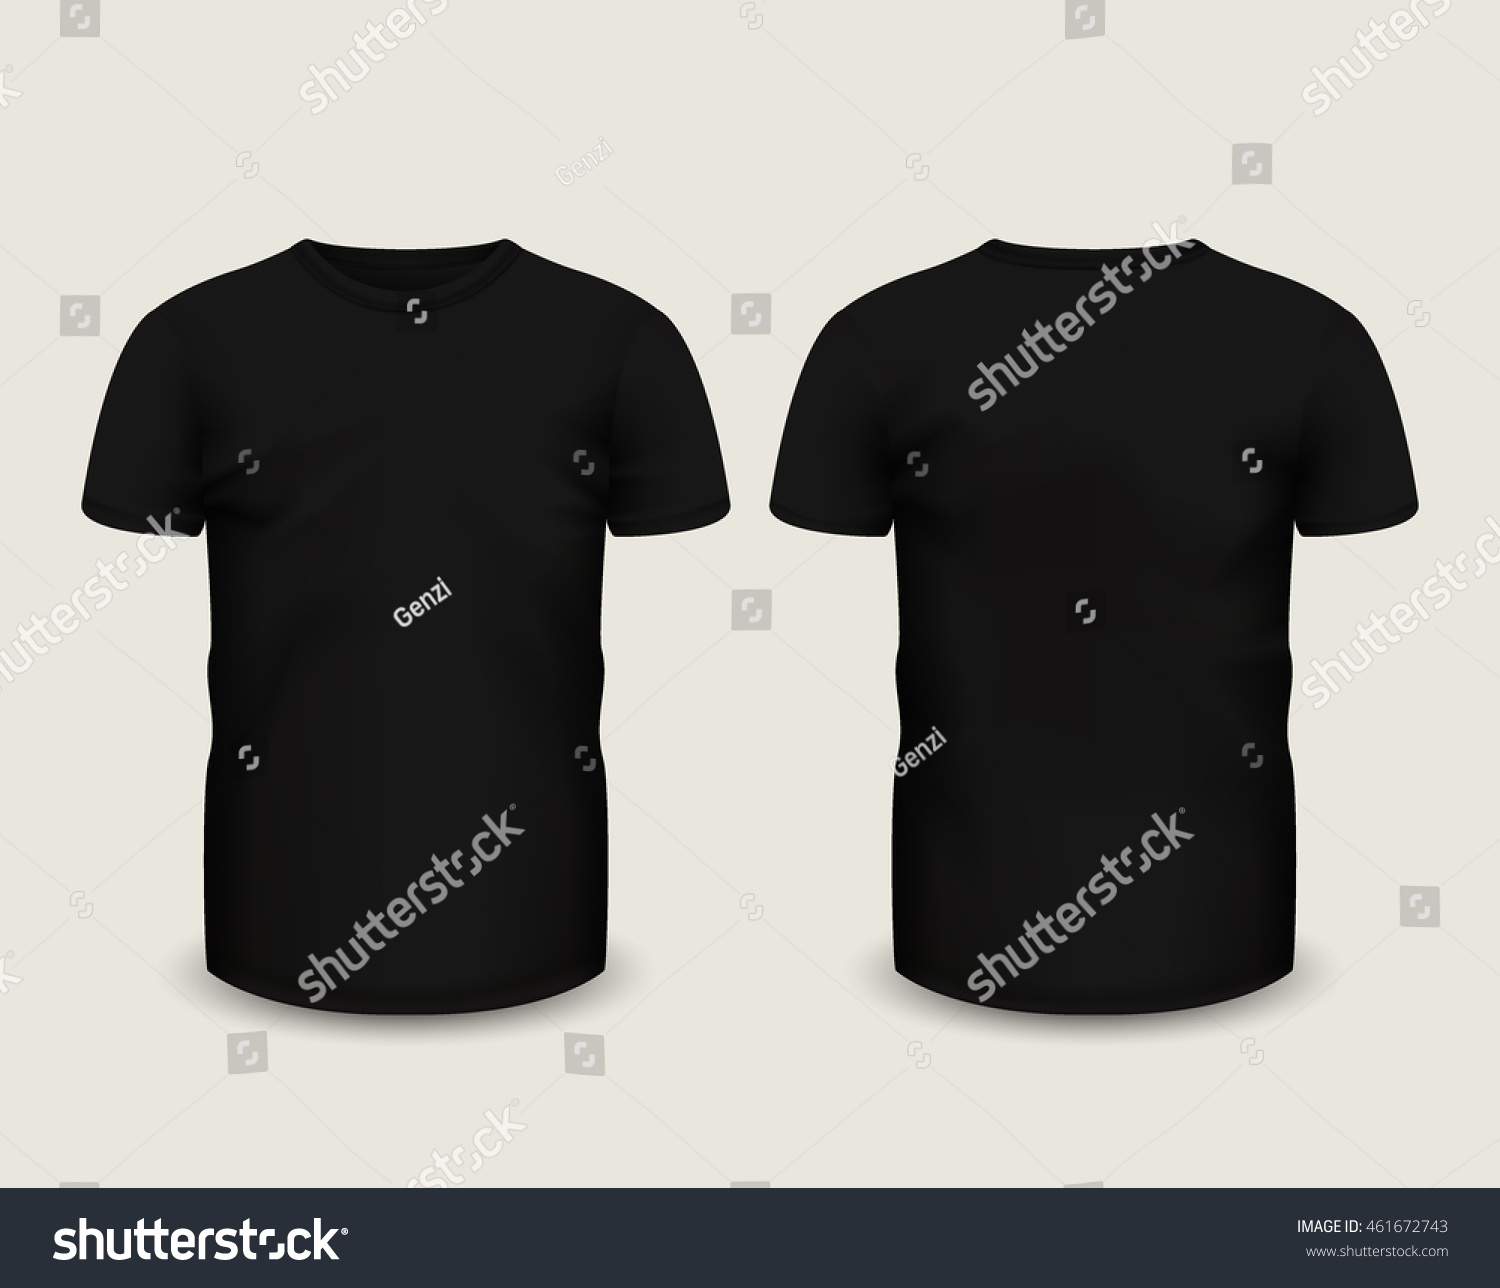 Black t shirt short sleeve - Men S Black T Shirt With Short Sleeve In Front And Back Views Vector Template